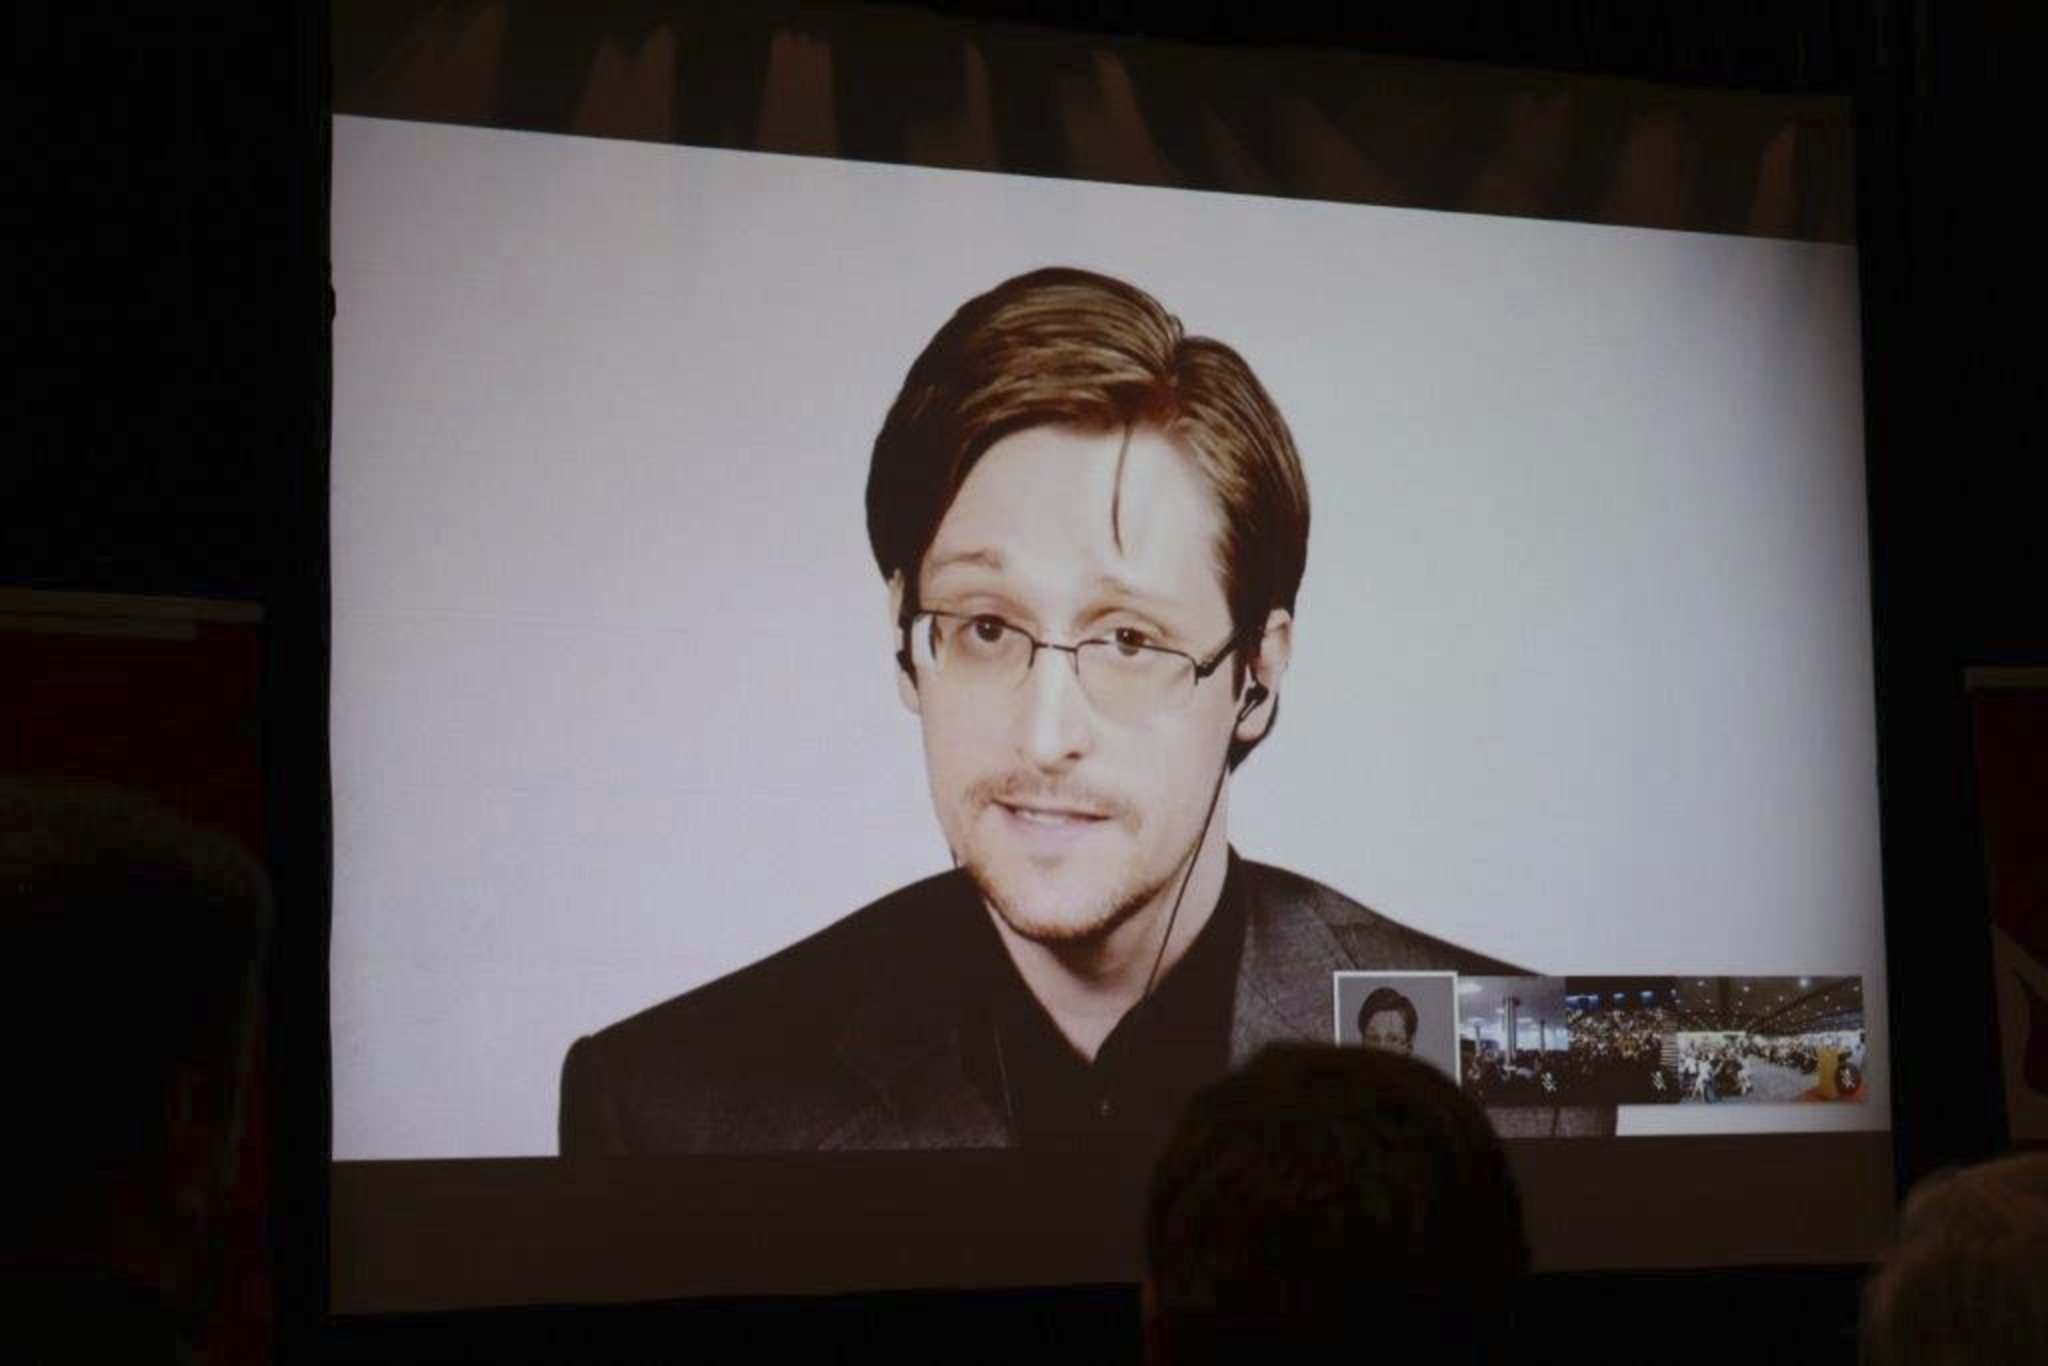 Edward Snowden speaks via video link to audiences at the universities of Winnipeg, Brandon and Lethbridge on Tuesday.